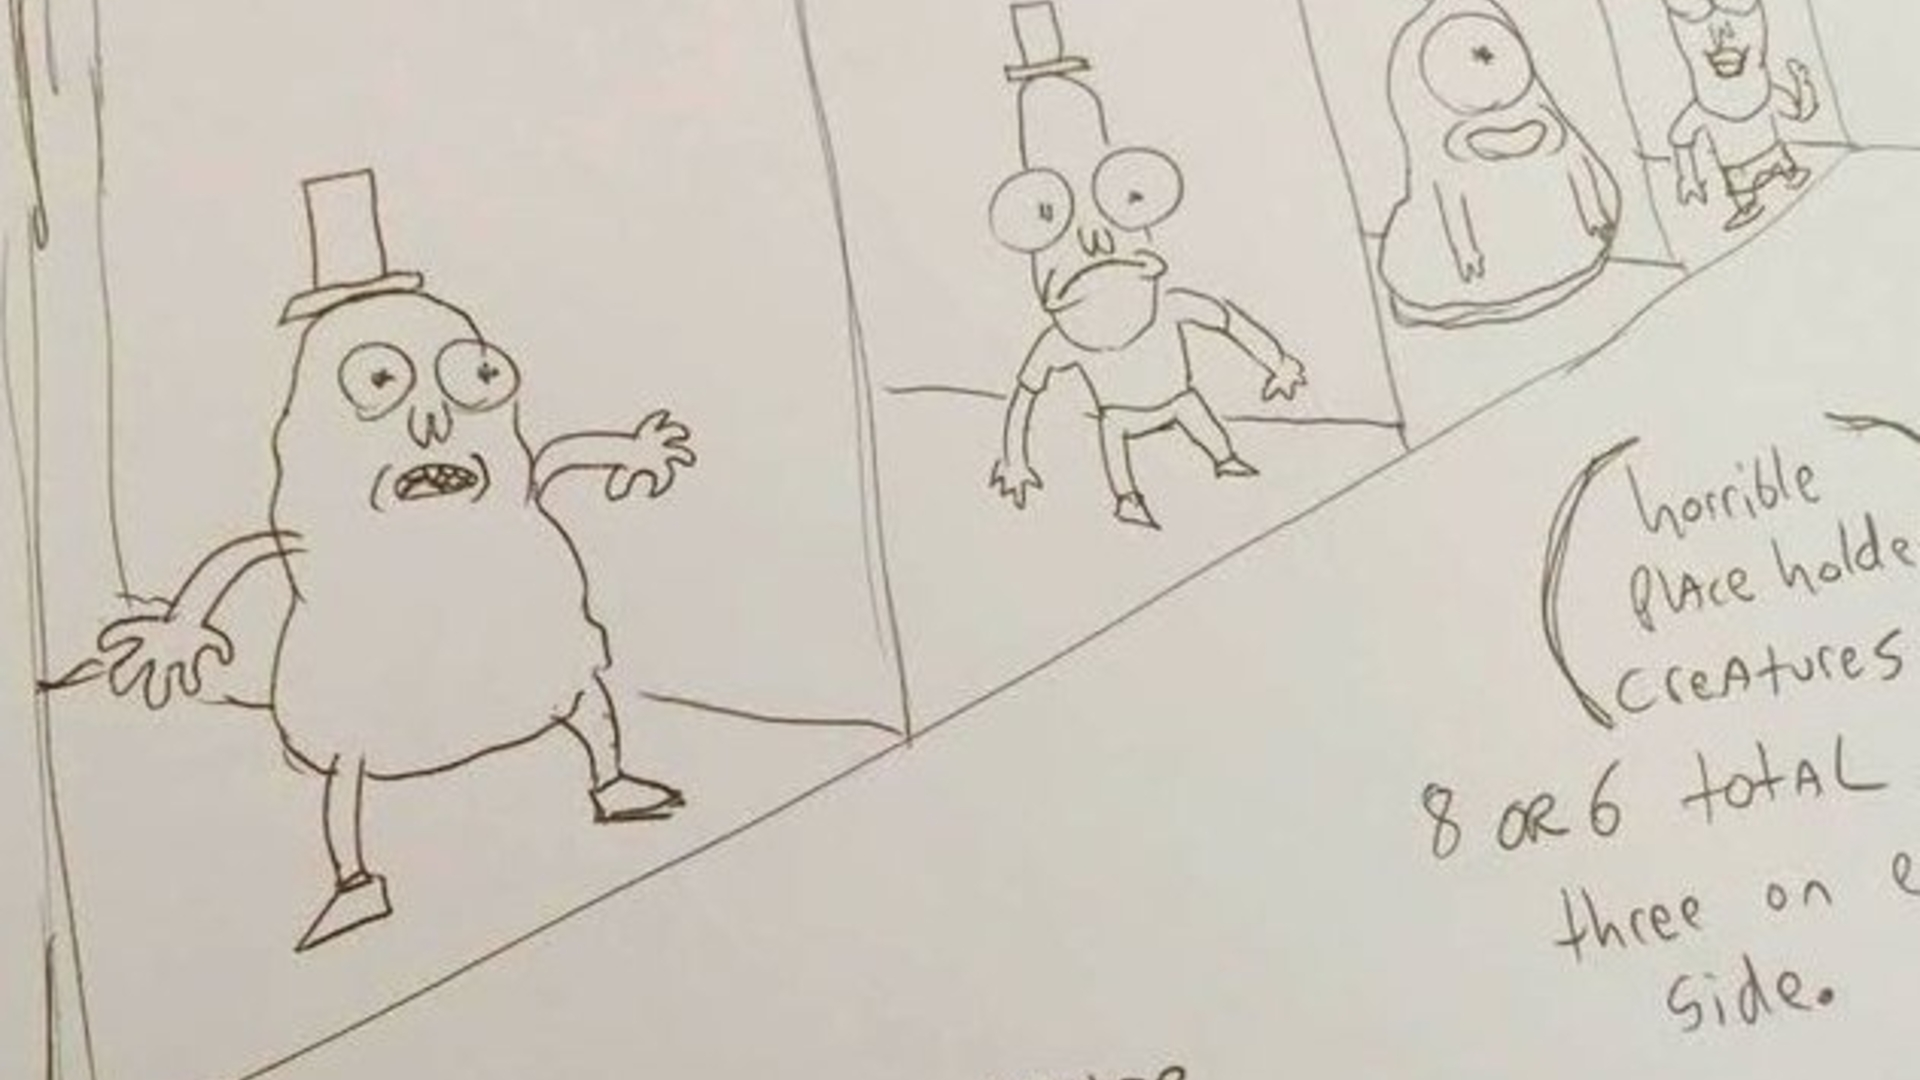 Rick and Morty co-creator is making a VR game